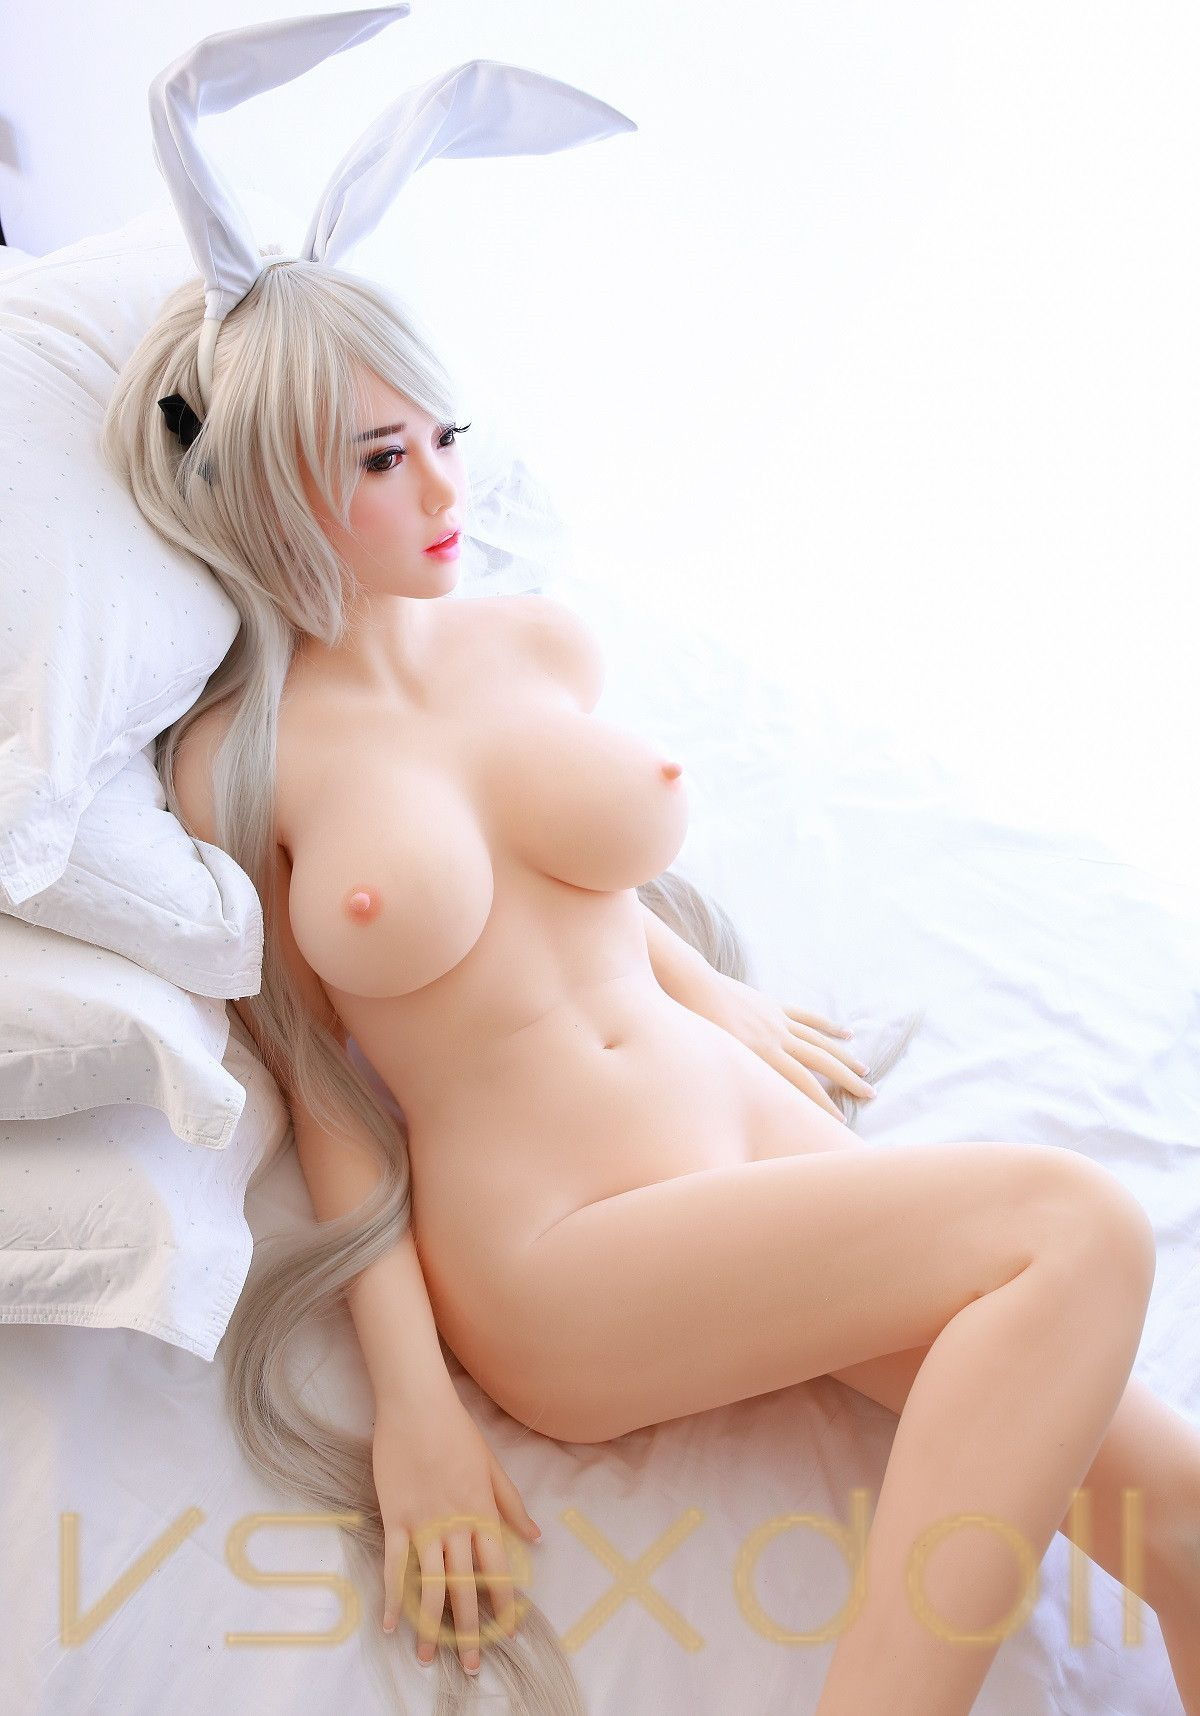 165cm White Long Hair Cute Cosplay Girl With Big Breasts Blonde Sex Doll